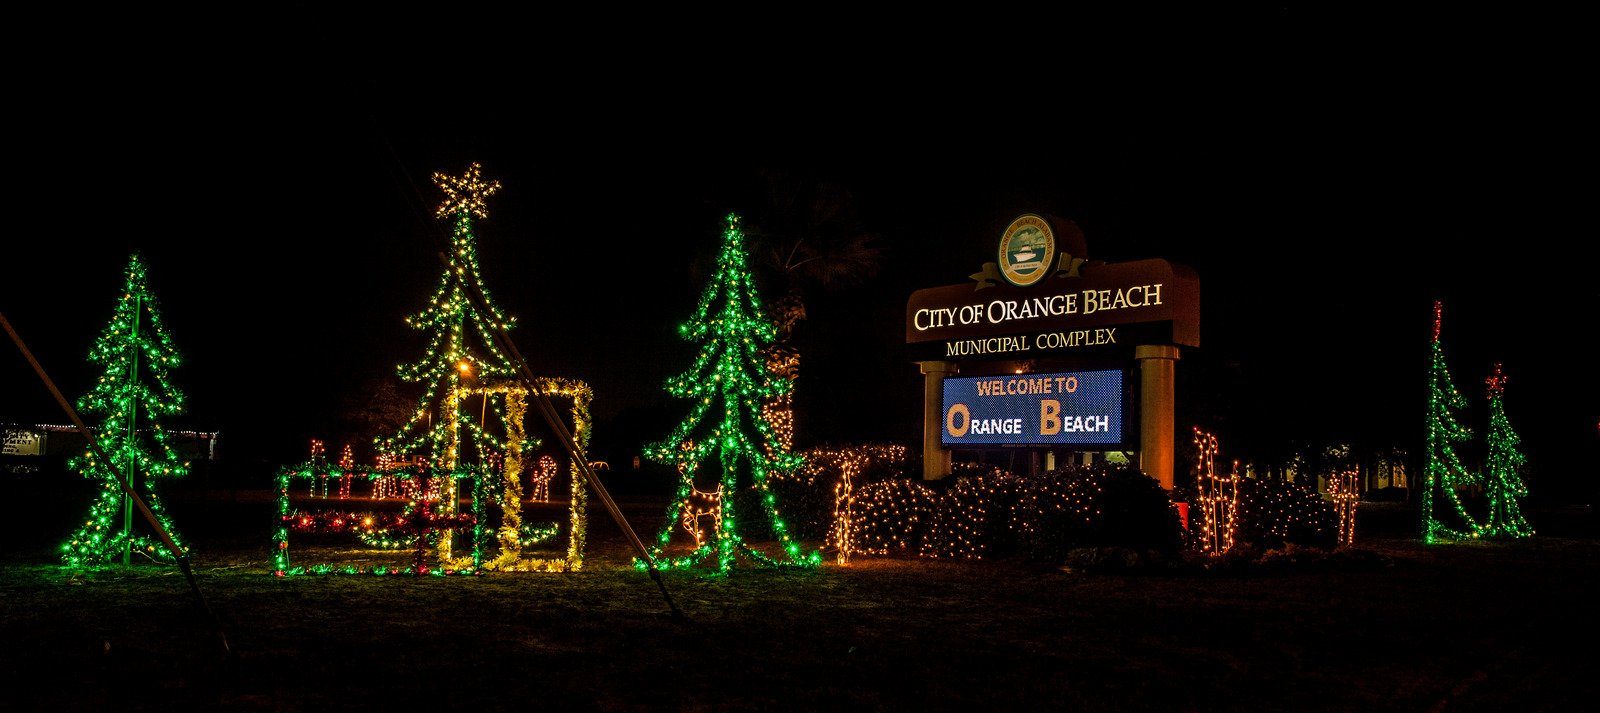 Flora Bama Christmas Potluck 2021 Orange Beach Christmas Happenings Events And Schedules